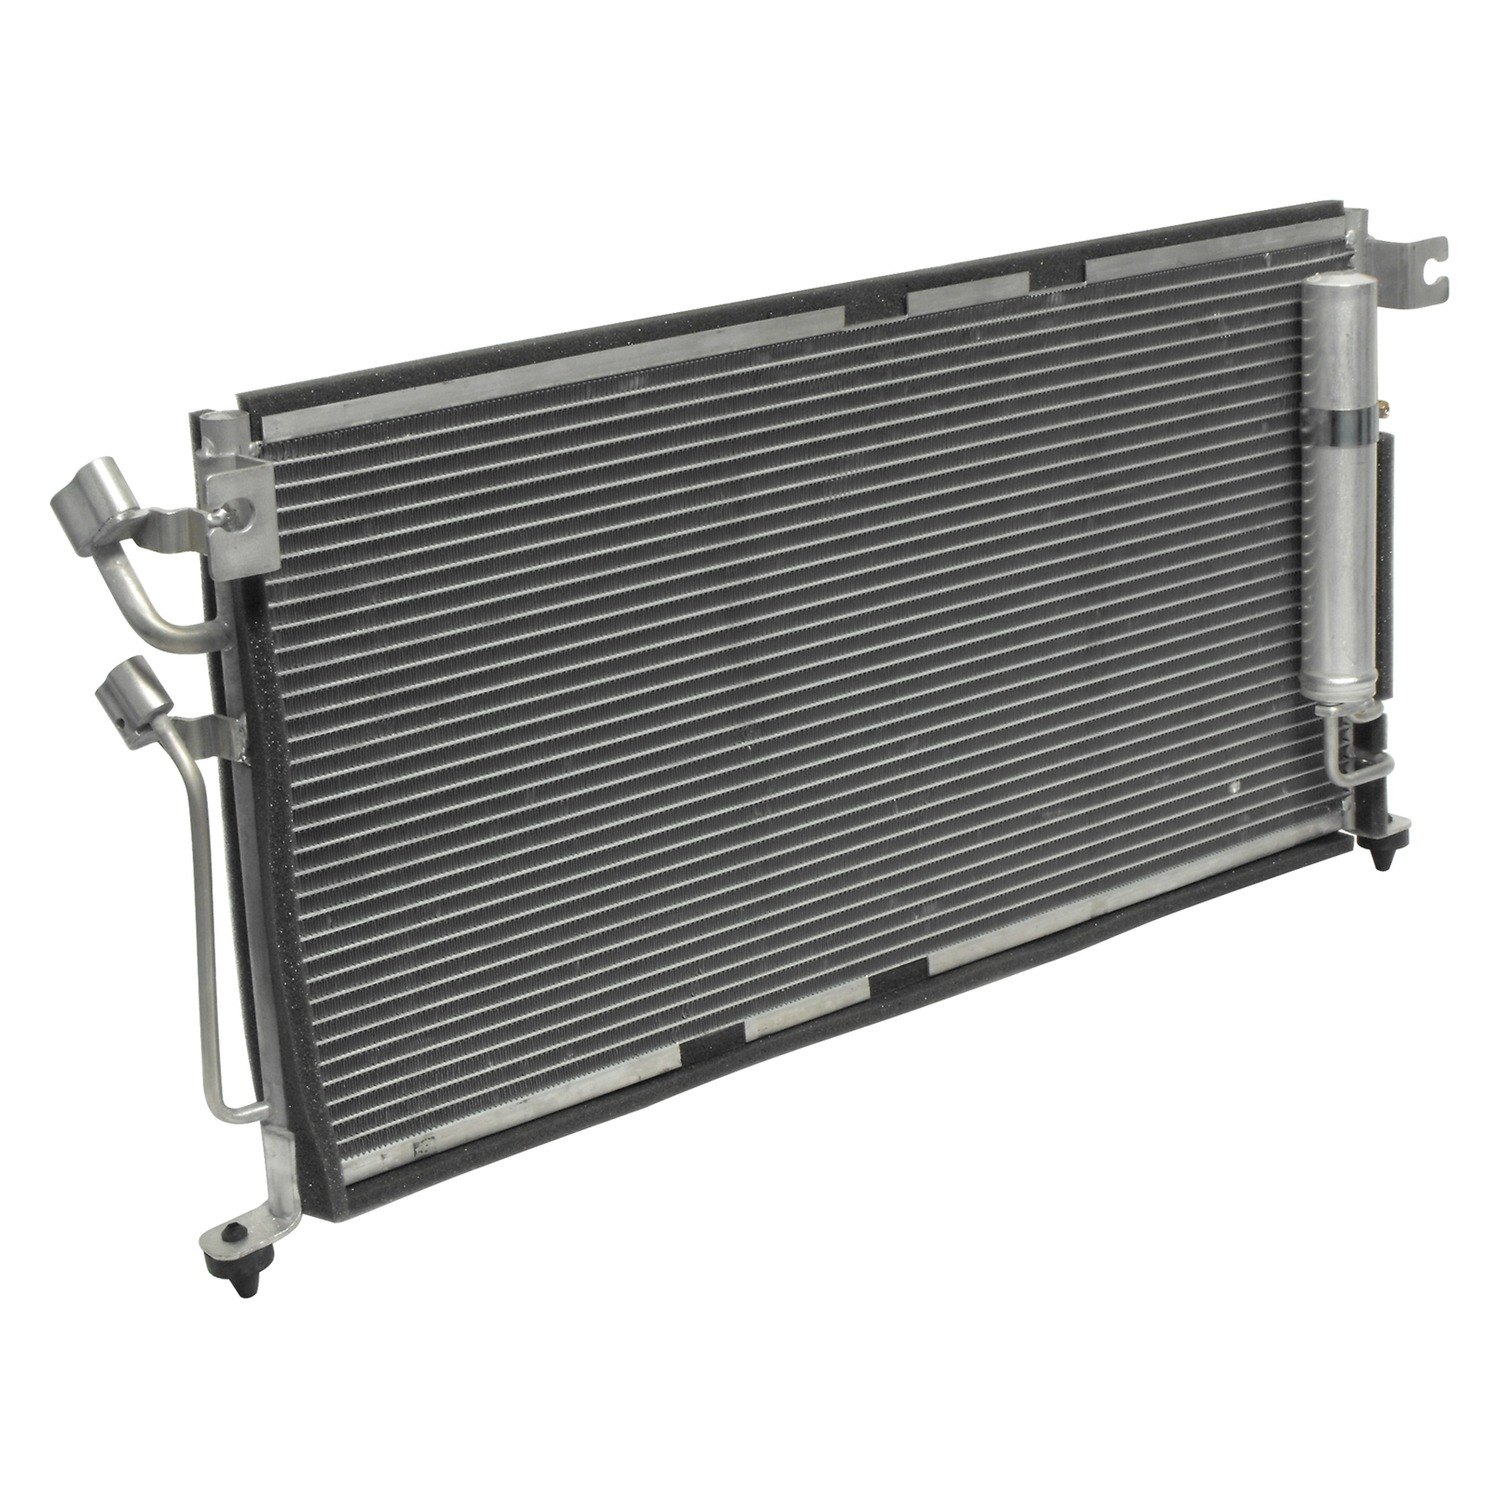 #57534E UAC® Mitsubishi Lancer 2004 A/C Condenser Highest Rated 13056 Mitsubishi Air Conditioning Parts img with 1500x1500 px on helpvideos.info - Air Conditioners, Air Coolers and more